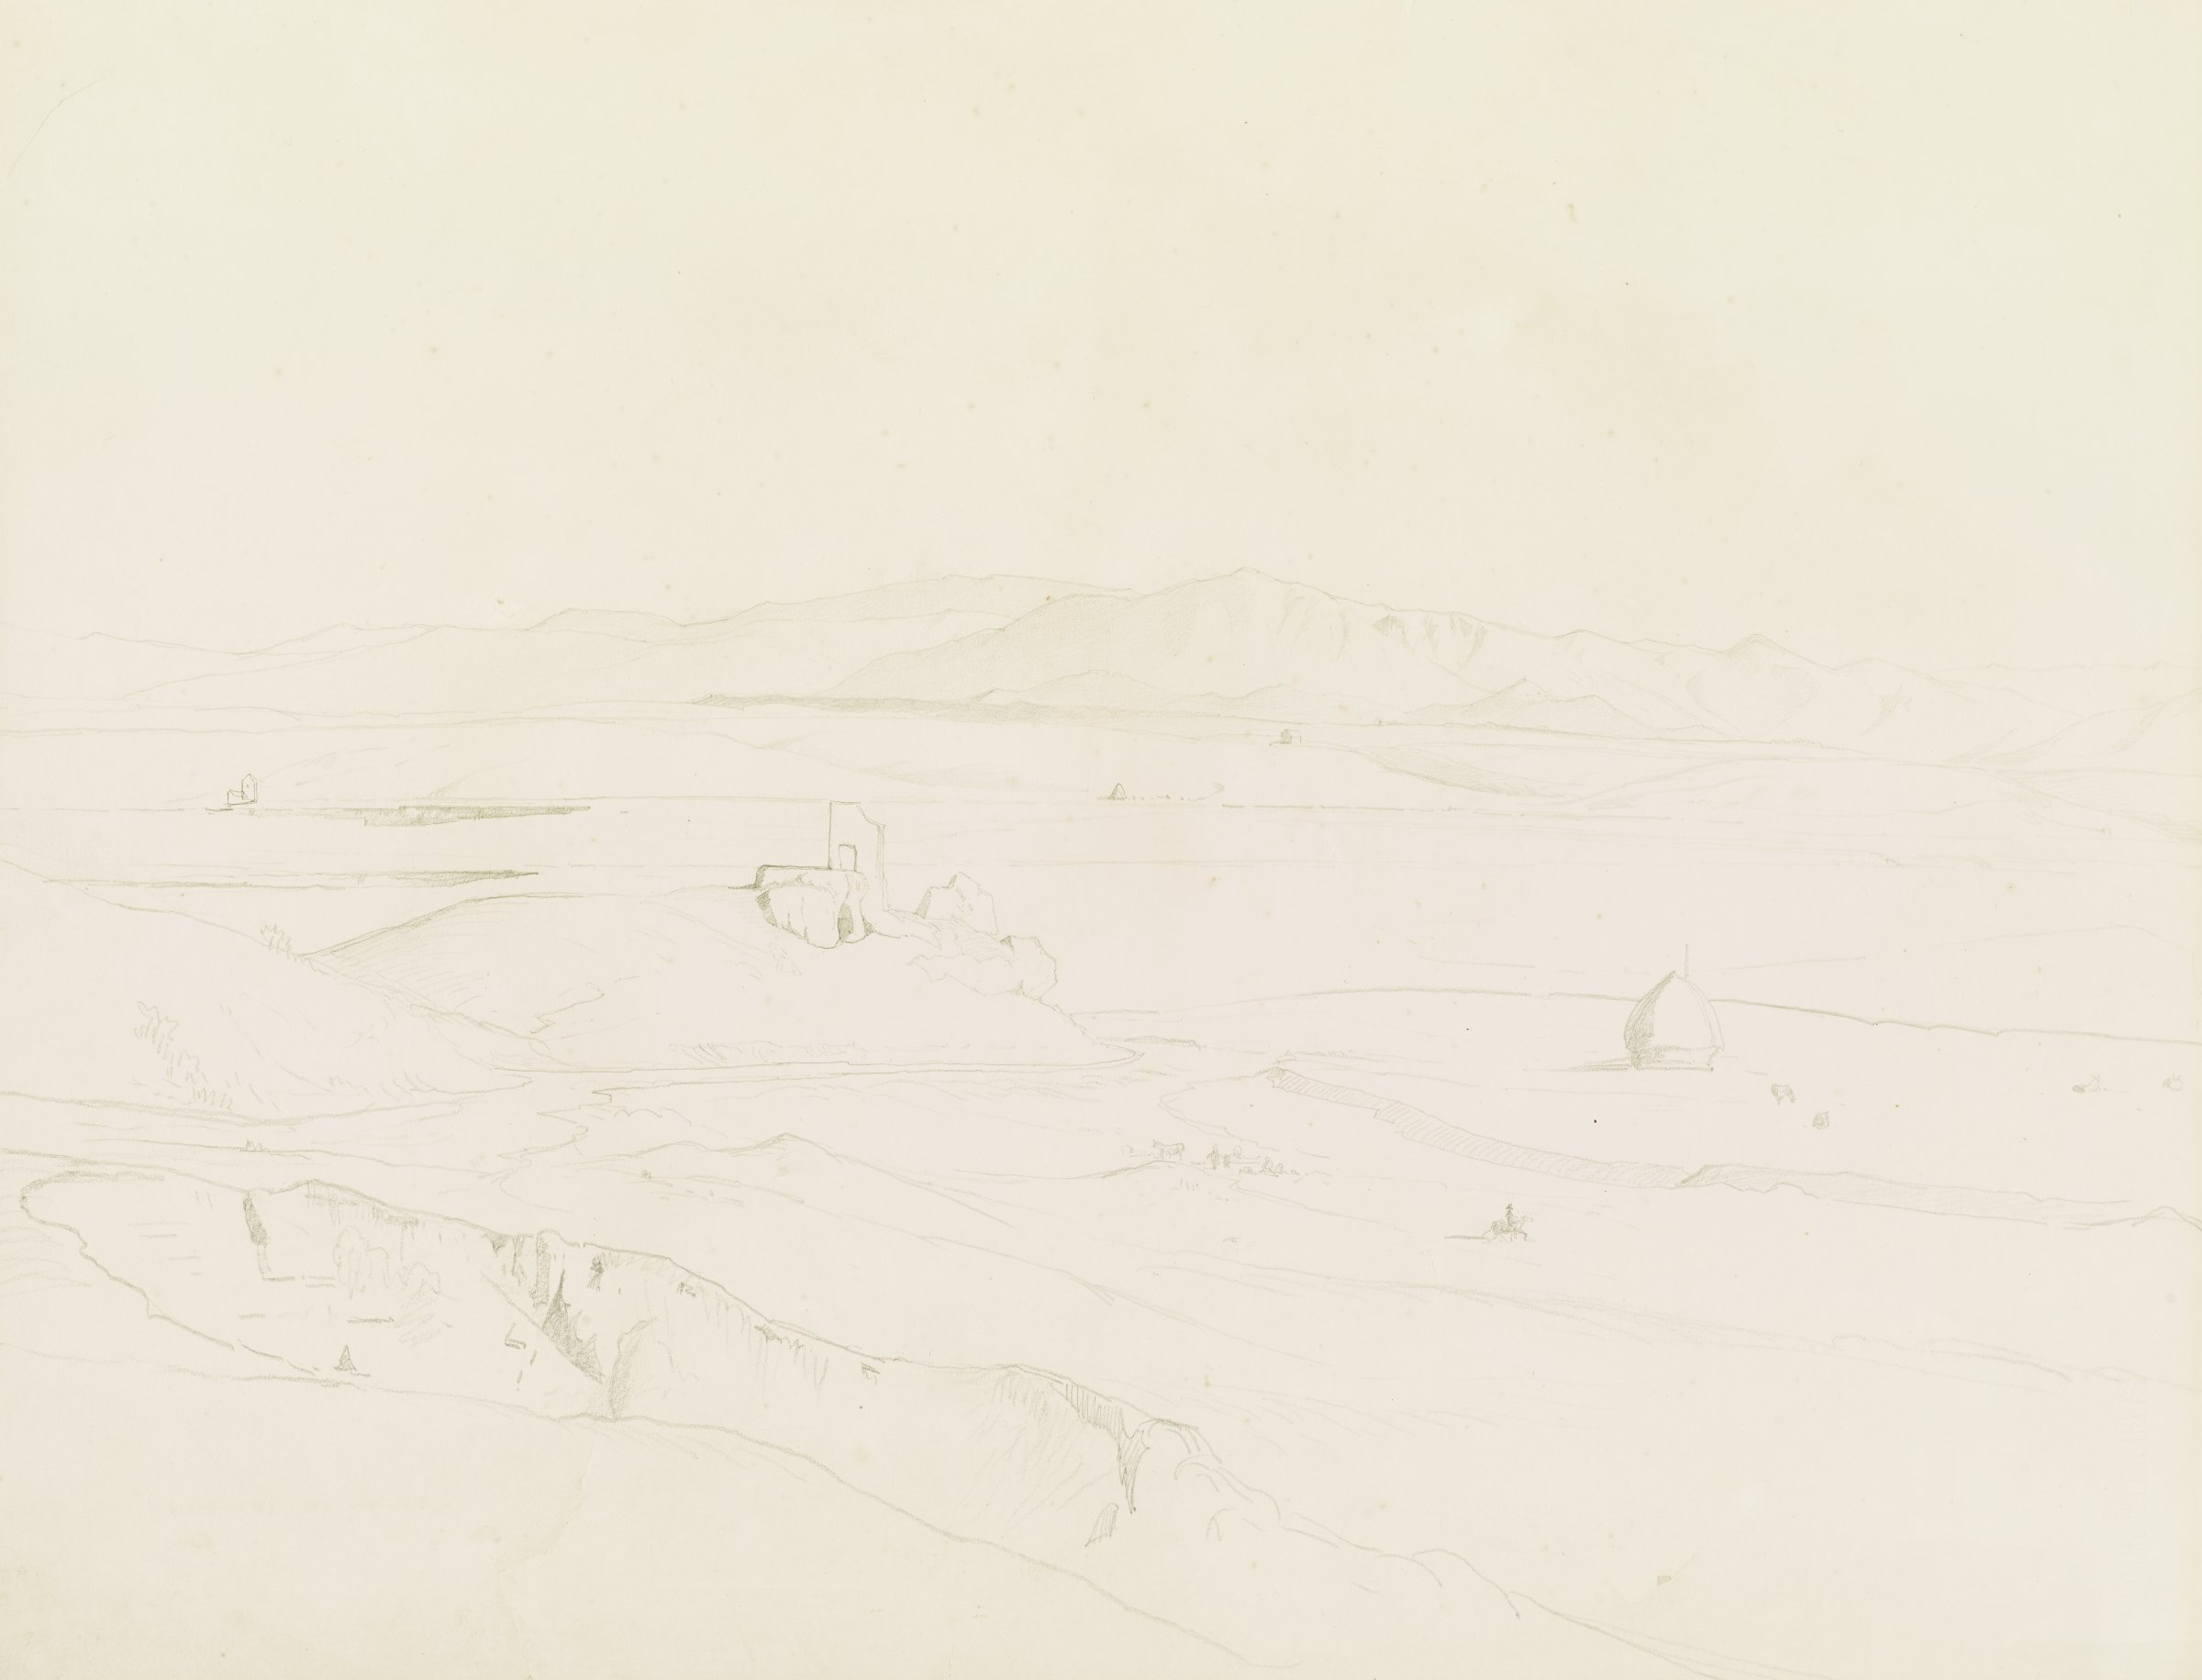 Campagna Romana, William Stanley Haseltine, pencil on paper